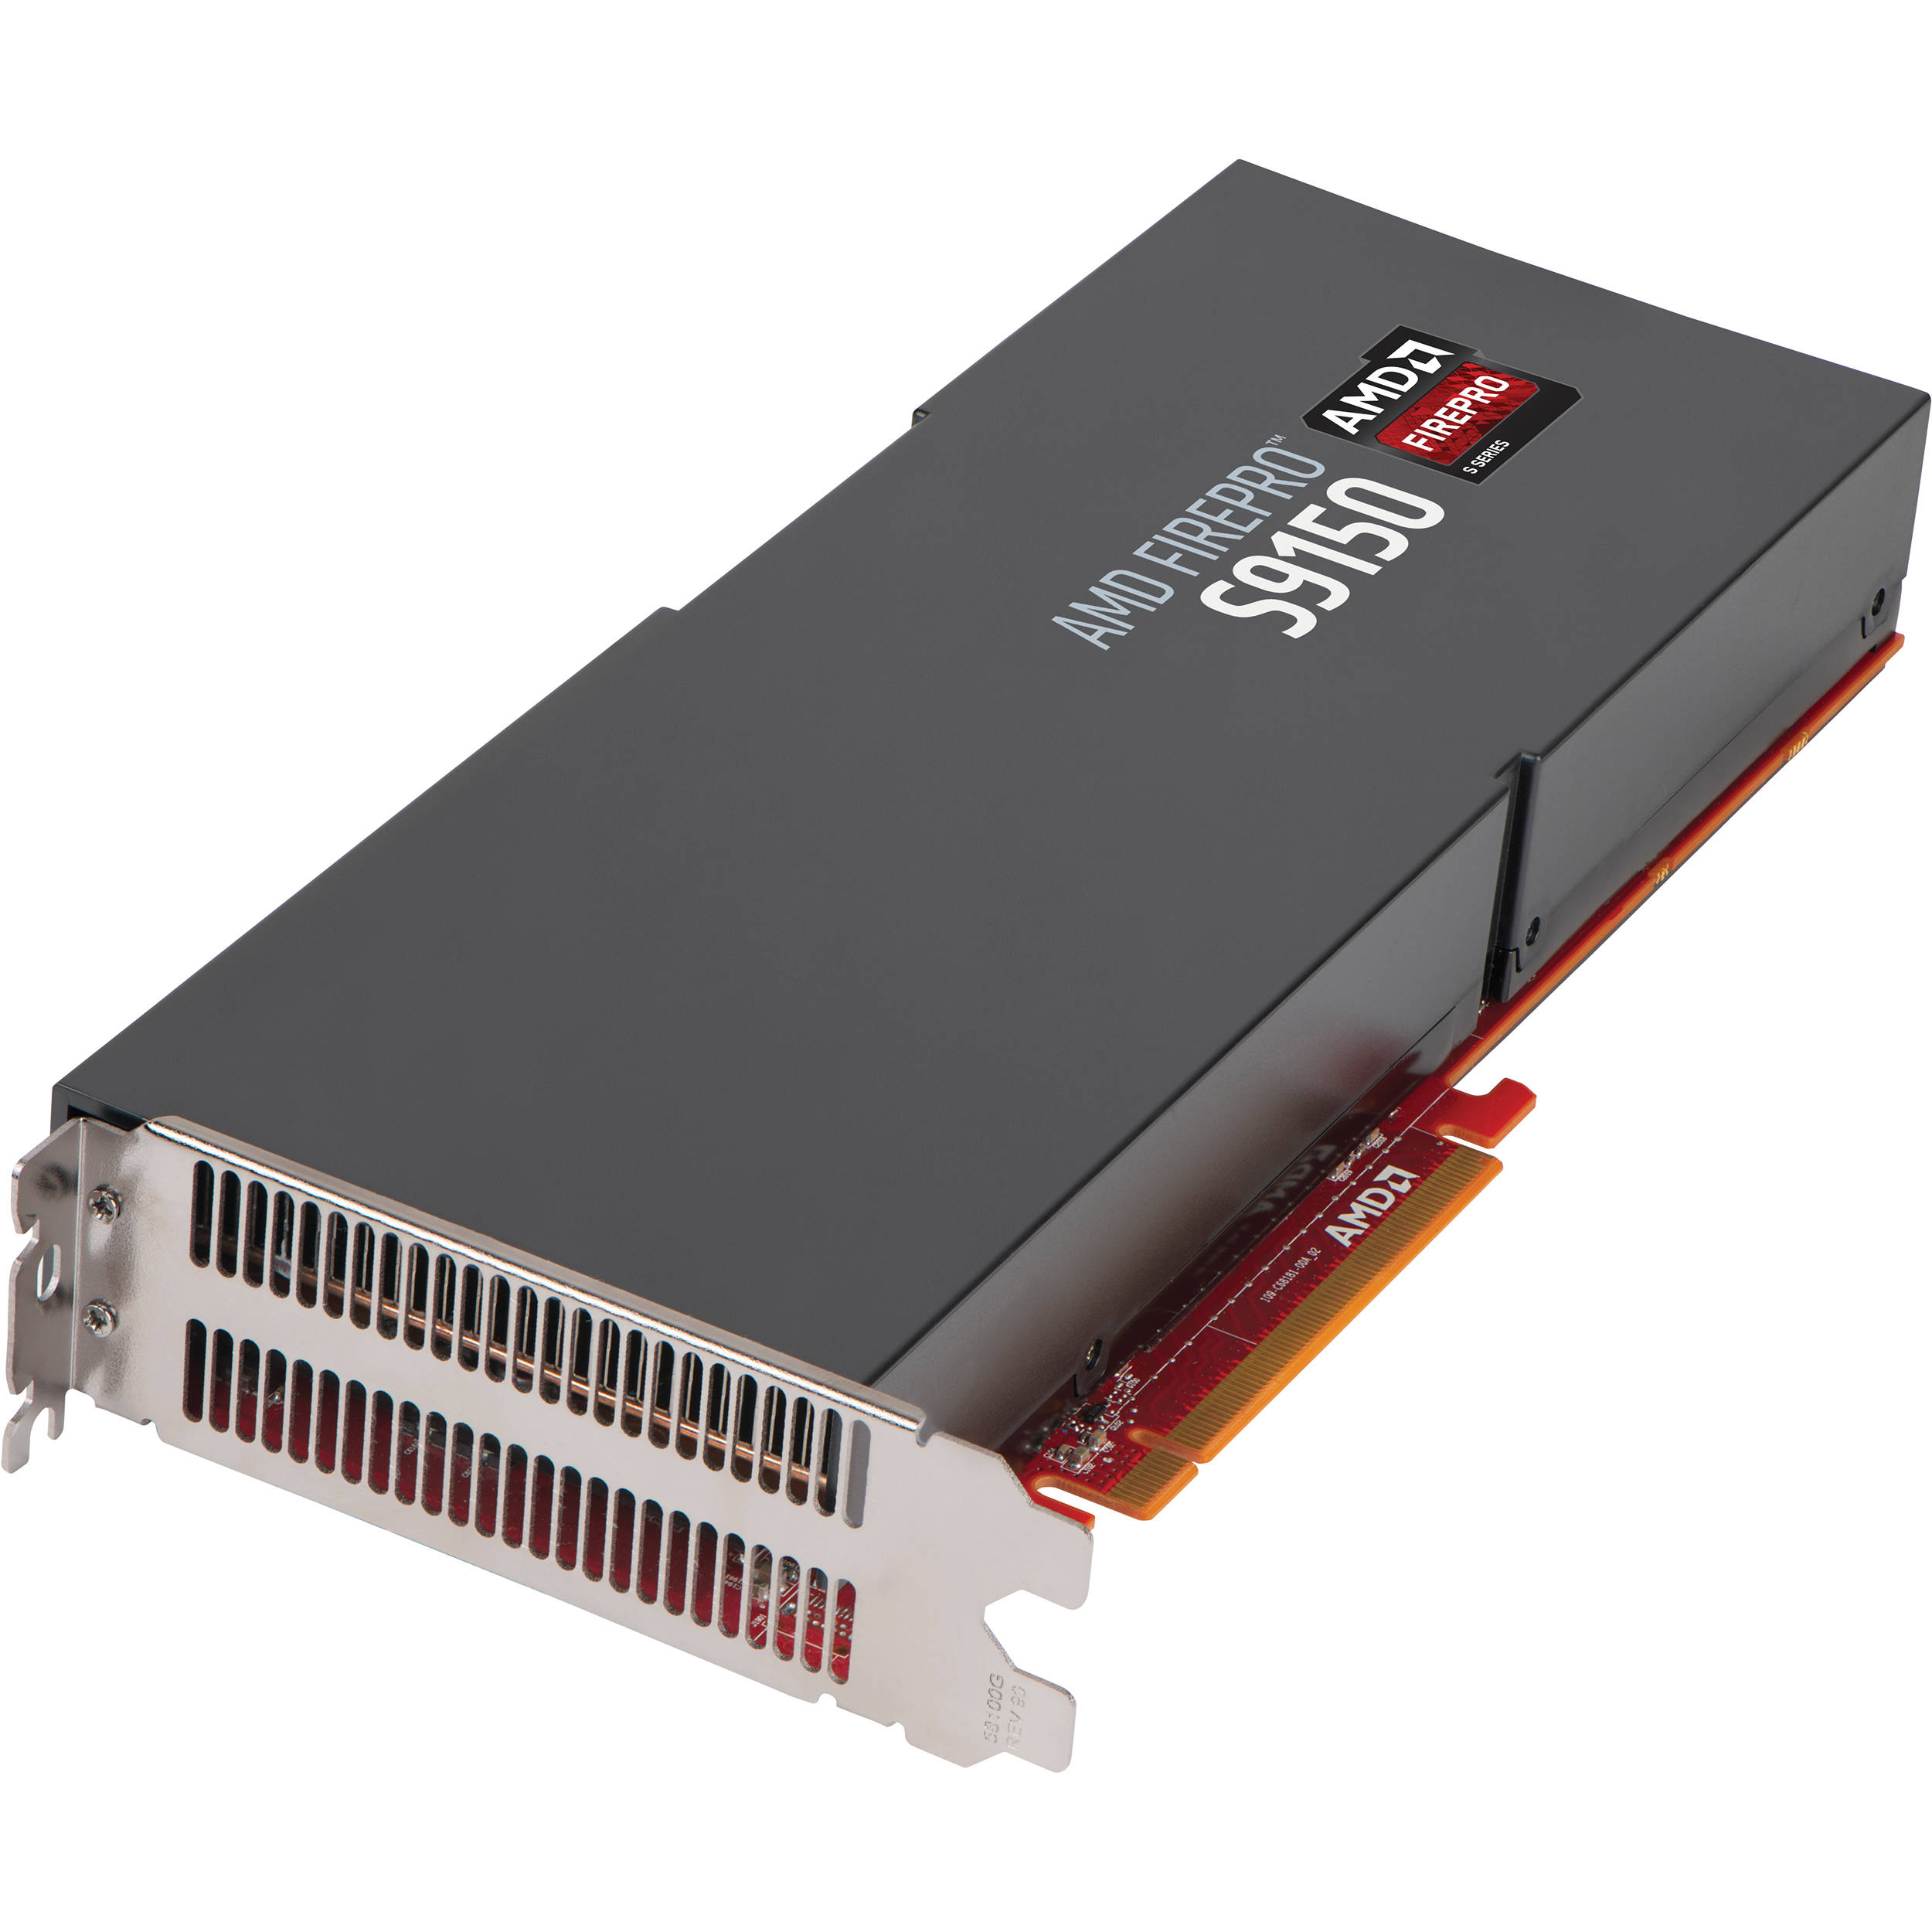 AMD FirePro S9150 Server Graphics Card